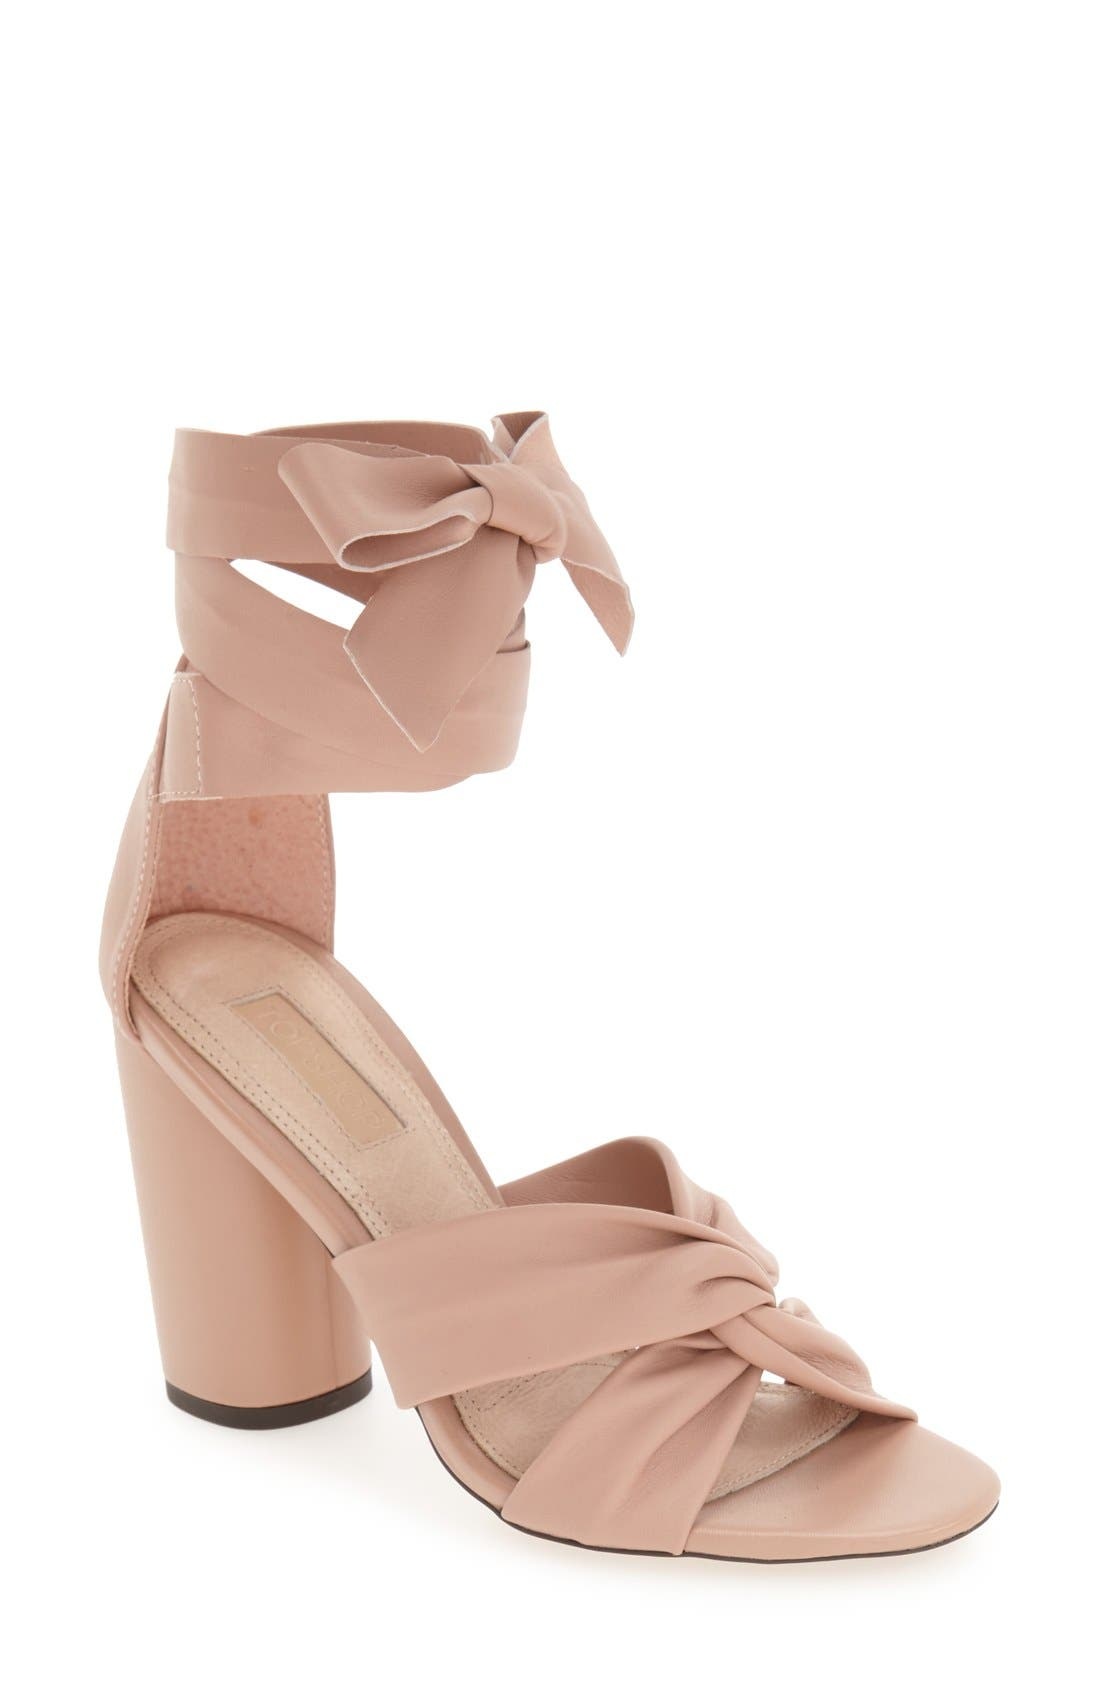 Alternate Image 1 Selected - Topshop 'Rosetta' Soft Knot Wraparound Sandal (Women)